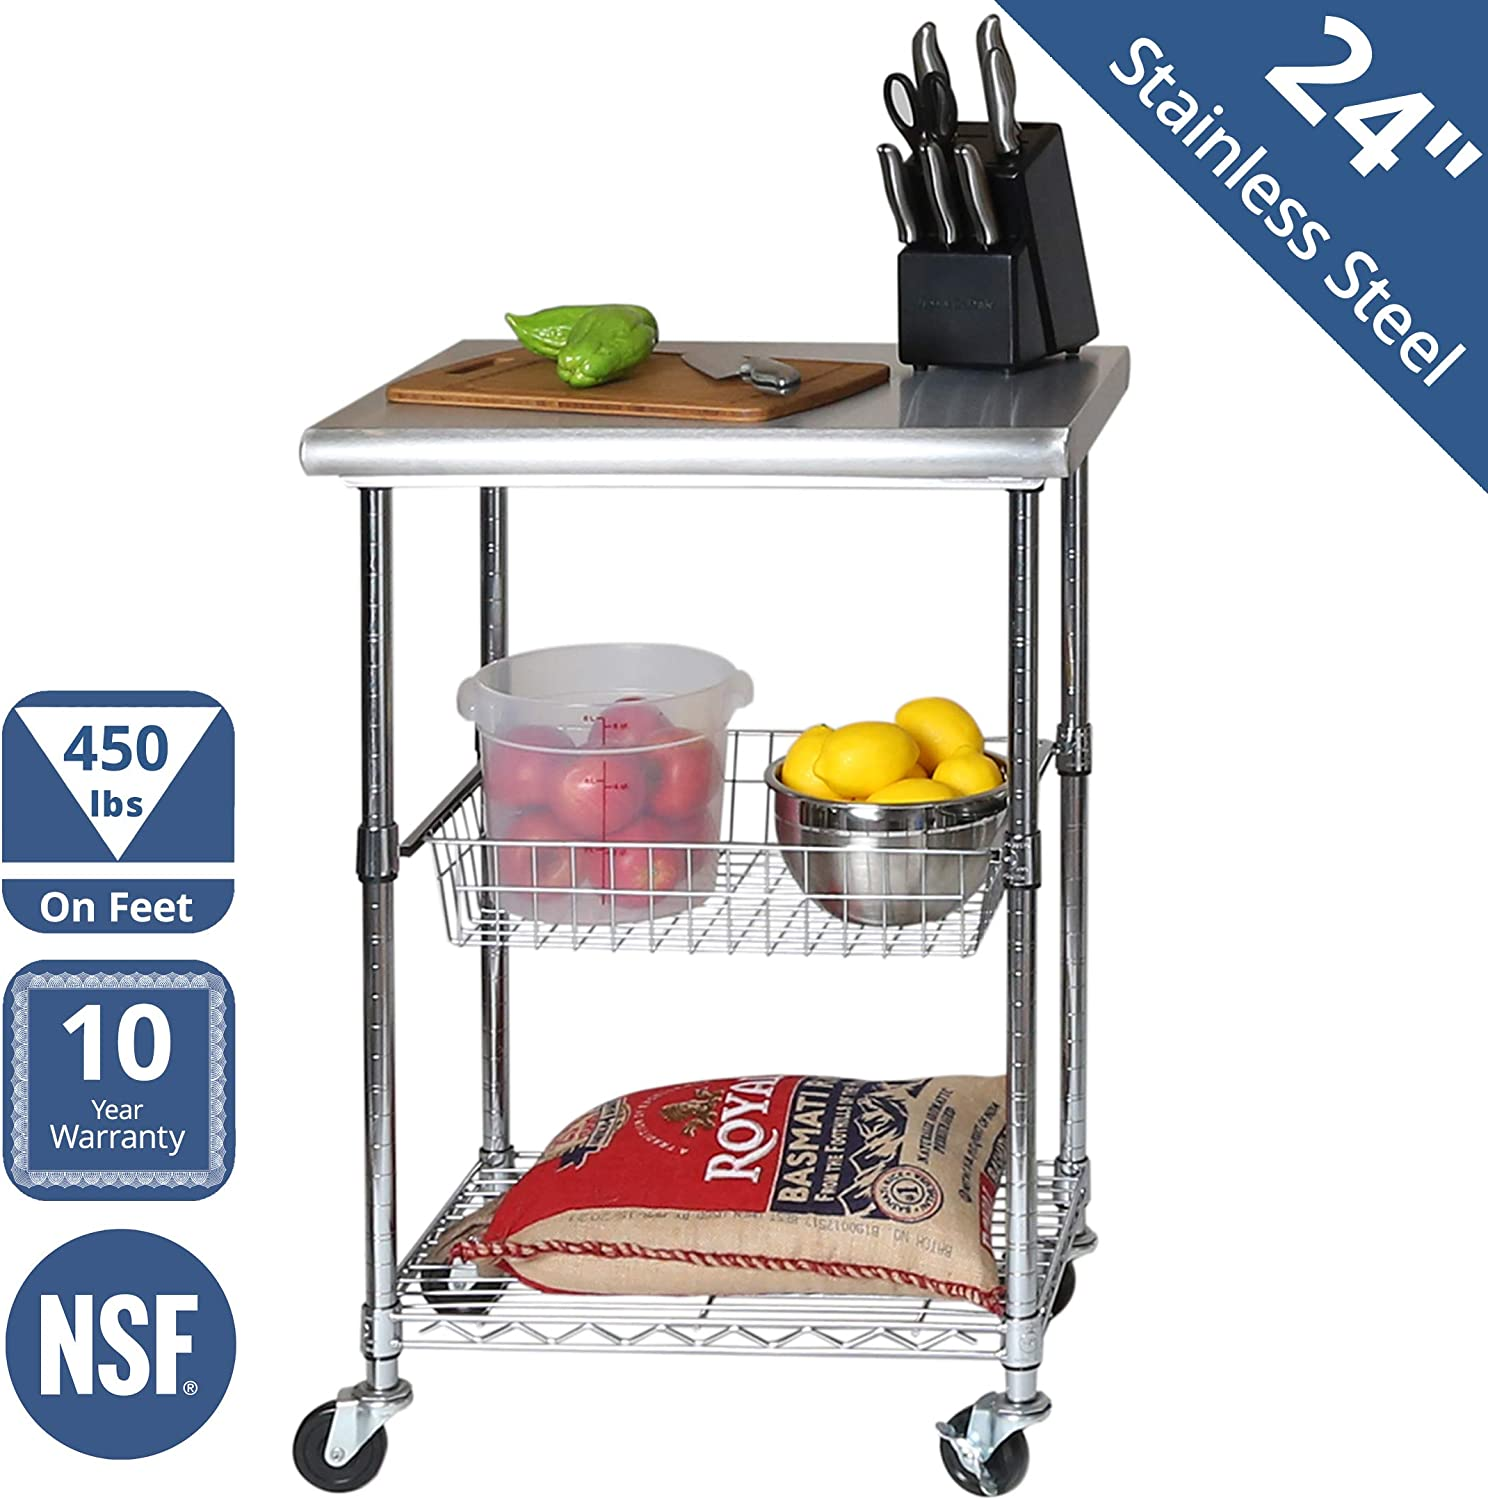 show original title load Details about  /Stainless Steel Table Trolley with 2 Shelves 650 x 440 x 900 MM C3 200 KG